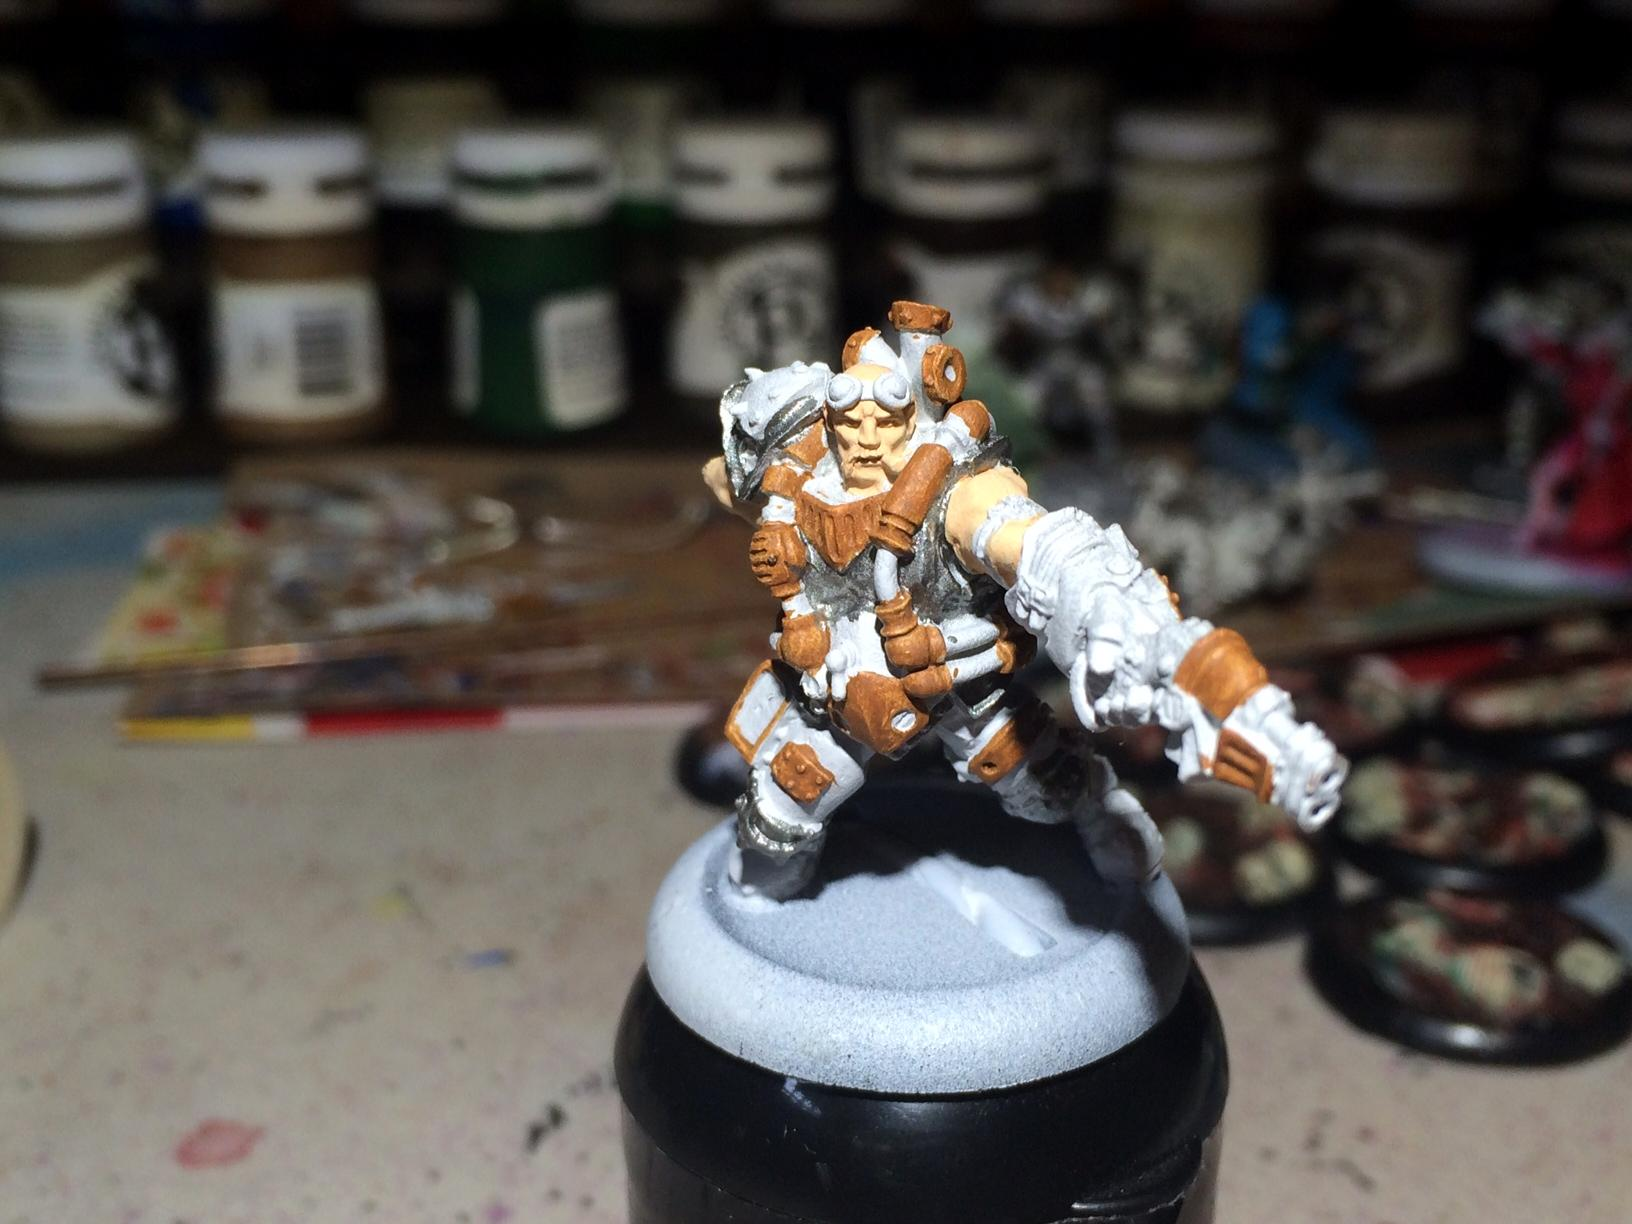 Macbain, Mercenary, Privateer Press, Warcaster, Warmachine